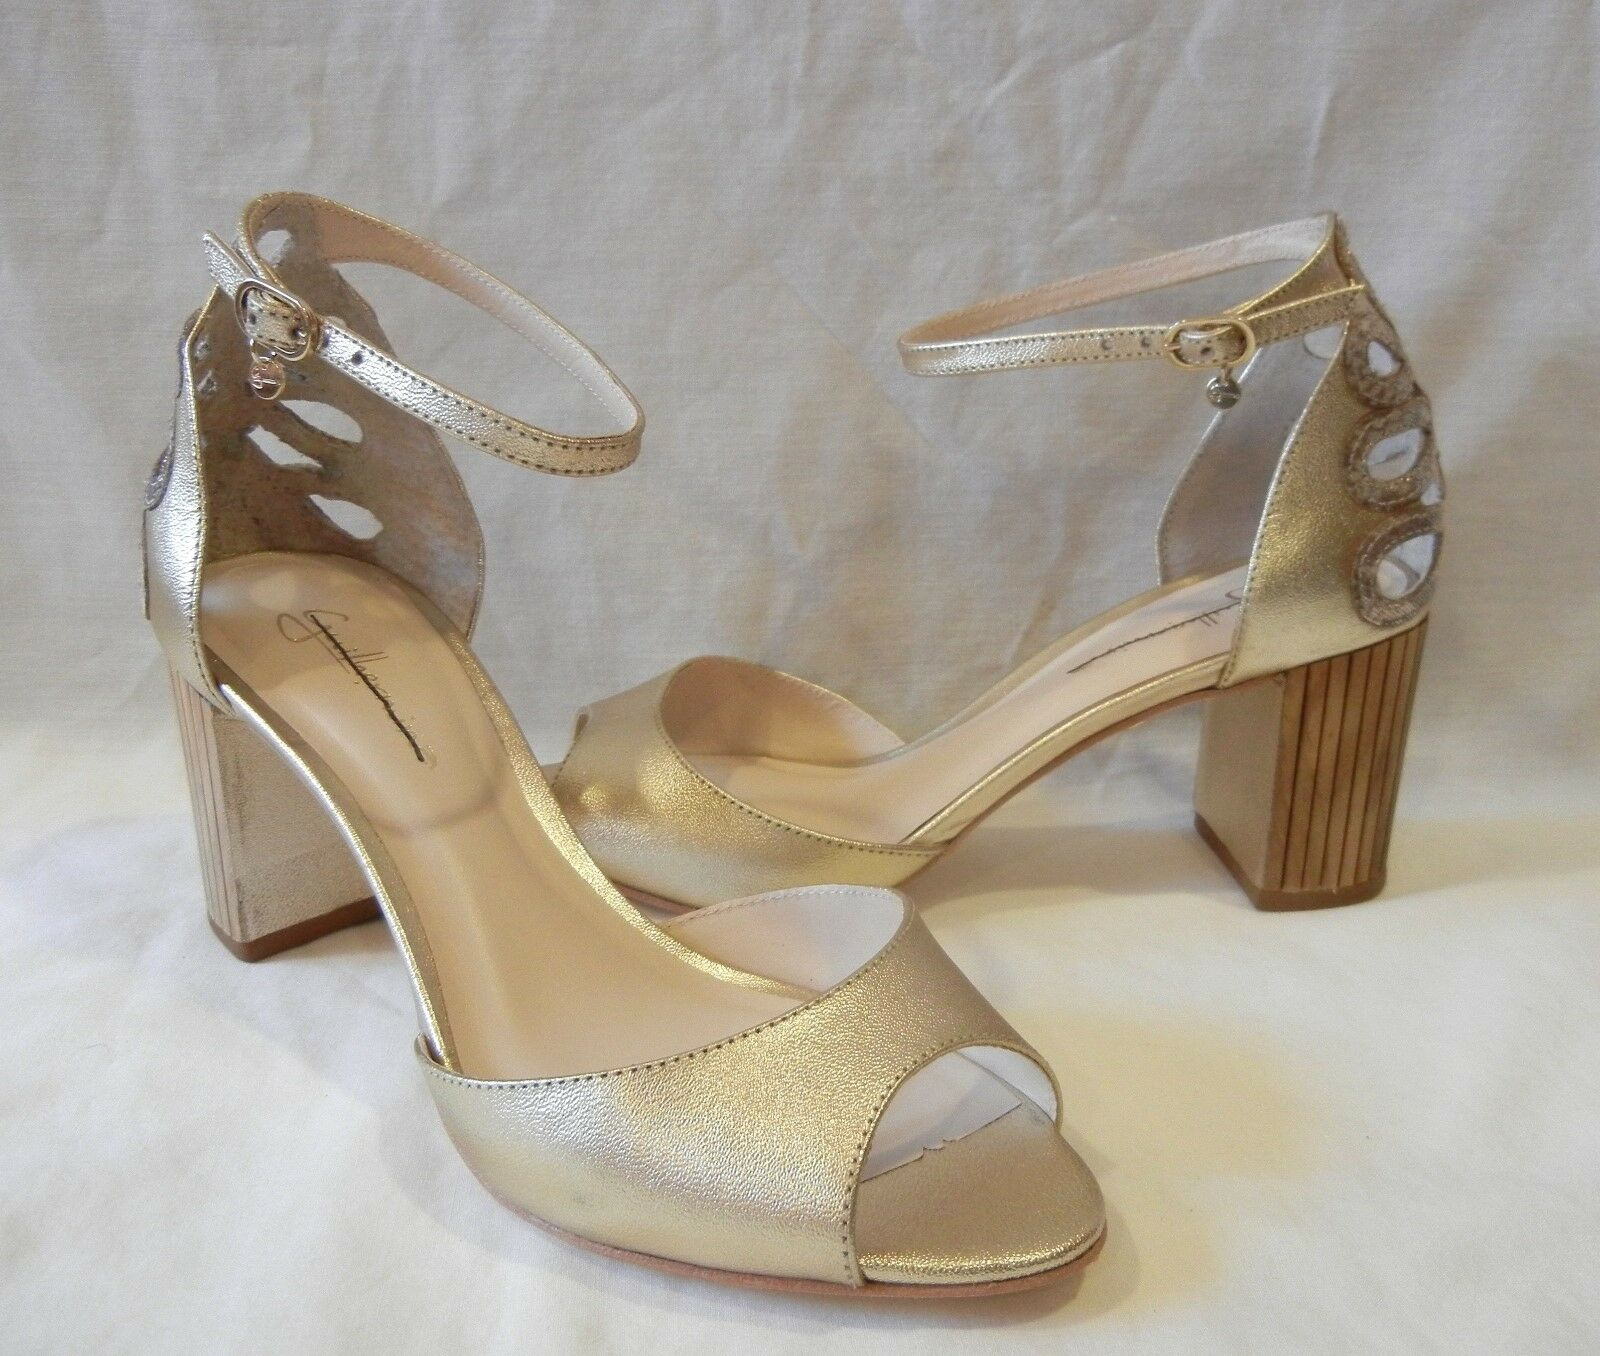 Guilhermina Women's Bechette gold Leather Ankle Strap Heels Retail  140 size 7